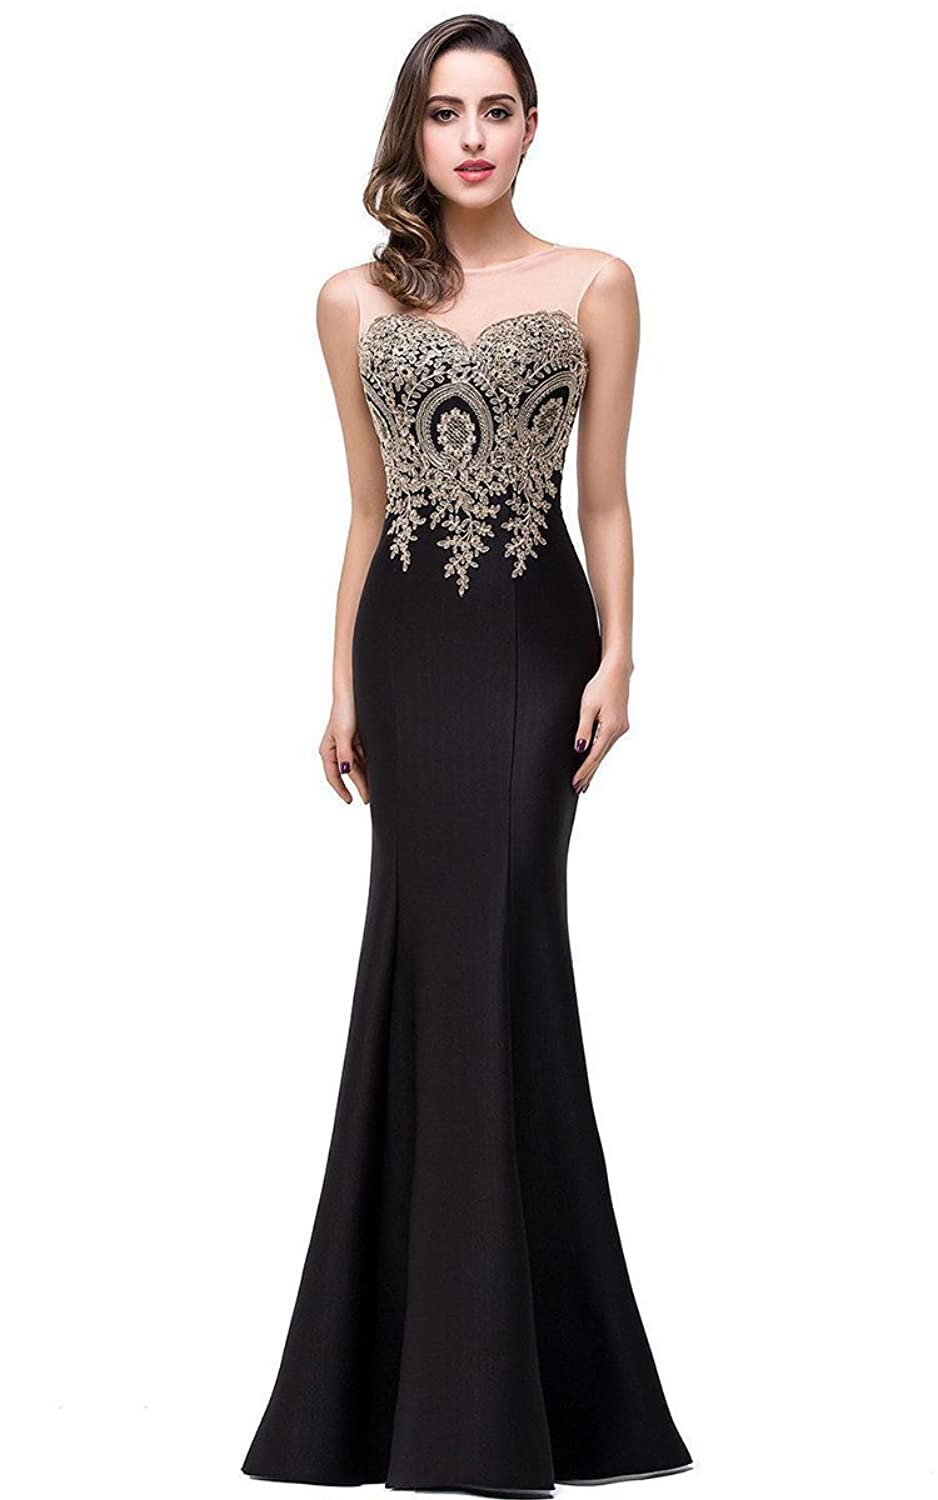 Amazon.com: Babyonlinedress Mermaid Evening Dress for Women Formal ...